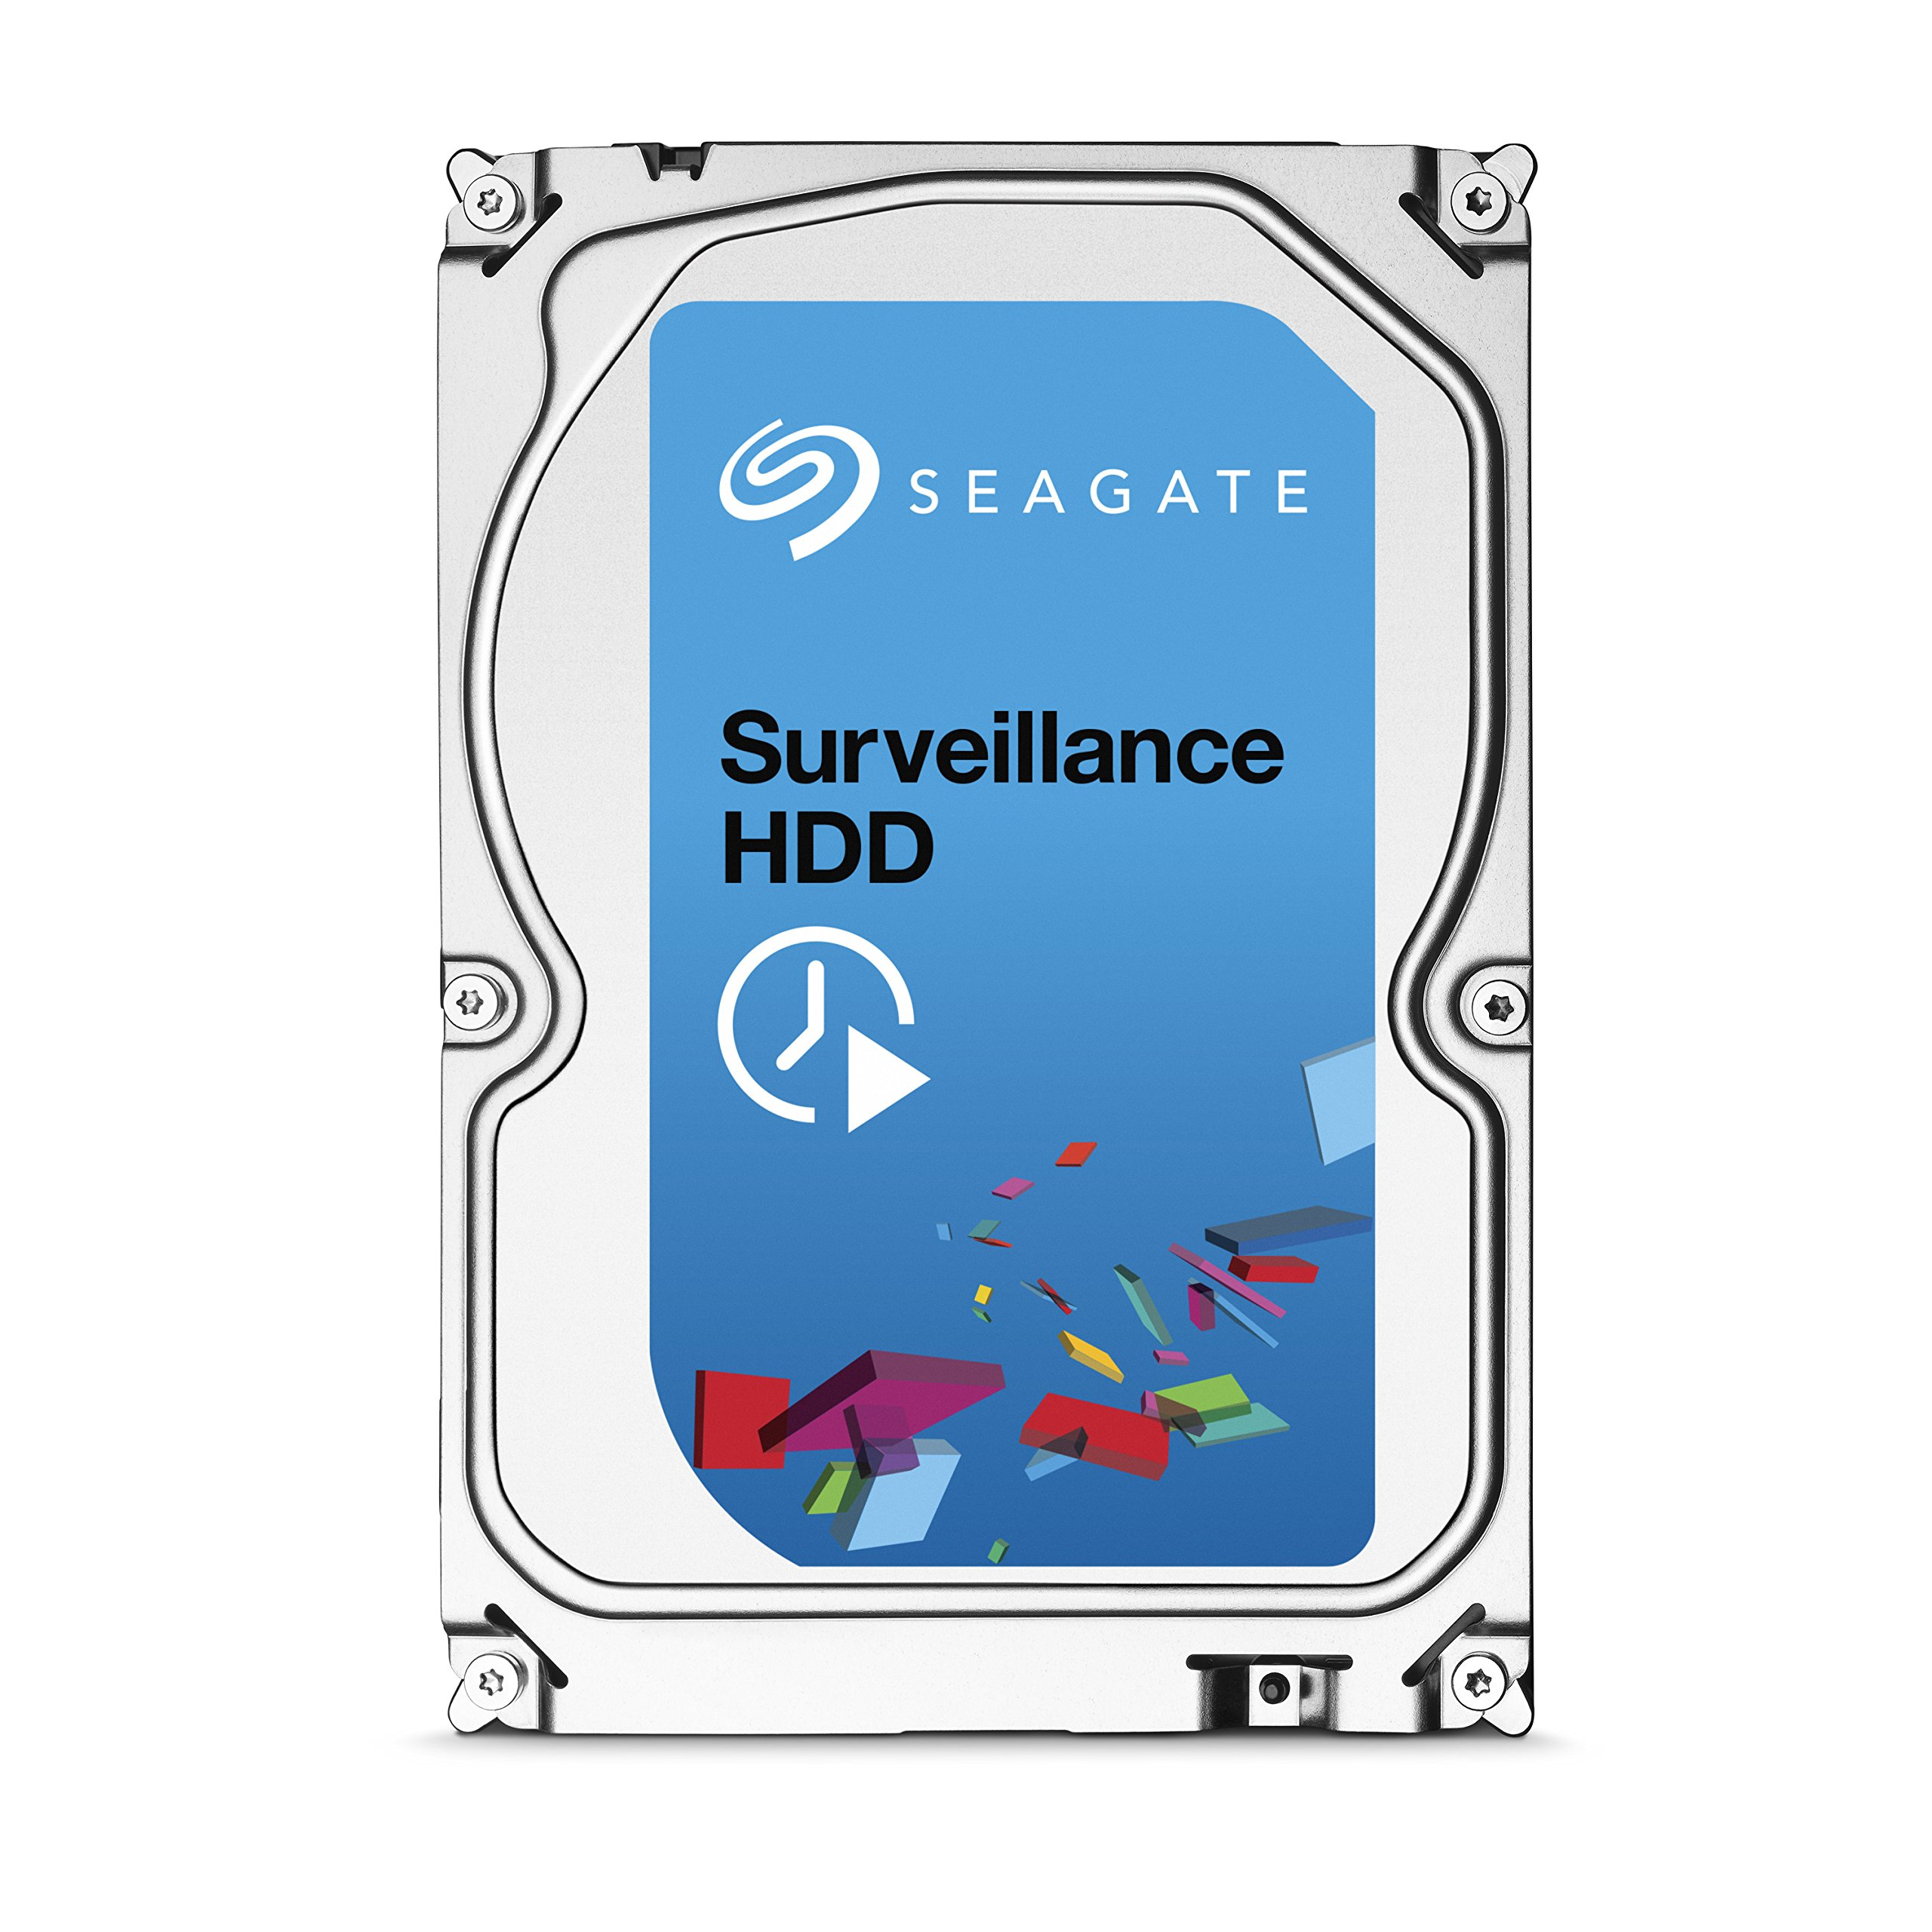 Seagate 3TB Surveillance Video HDD SATA 6Gb/s NCQ 64MB Cache 3.5-Inch Internal Bare Drive (ST3000VX002)